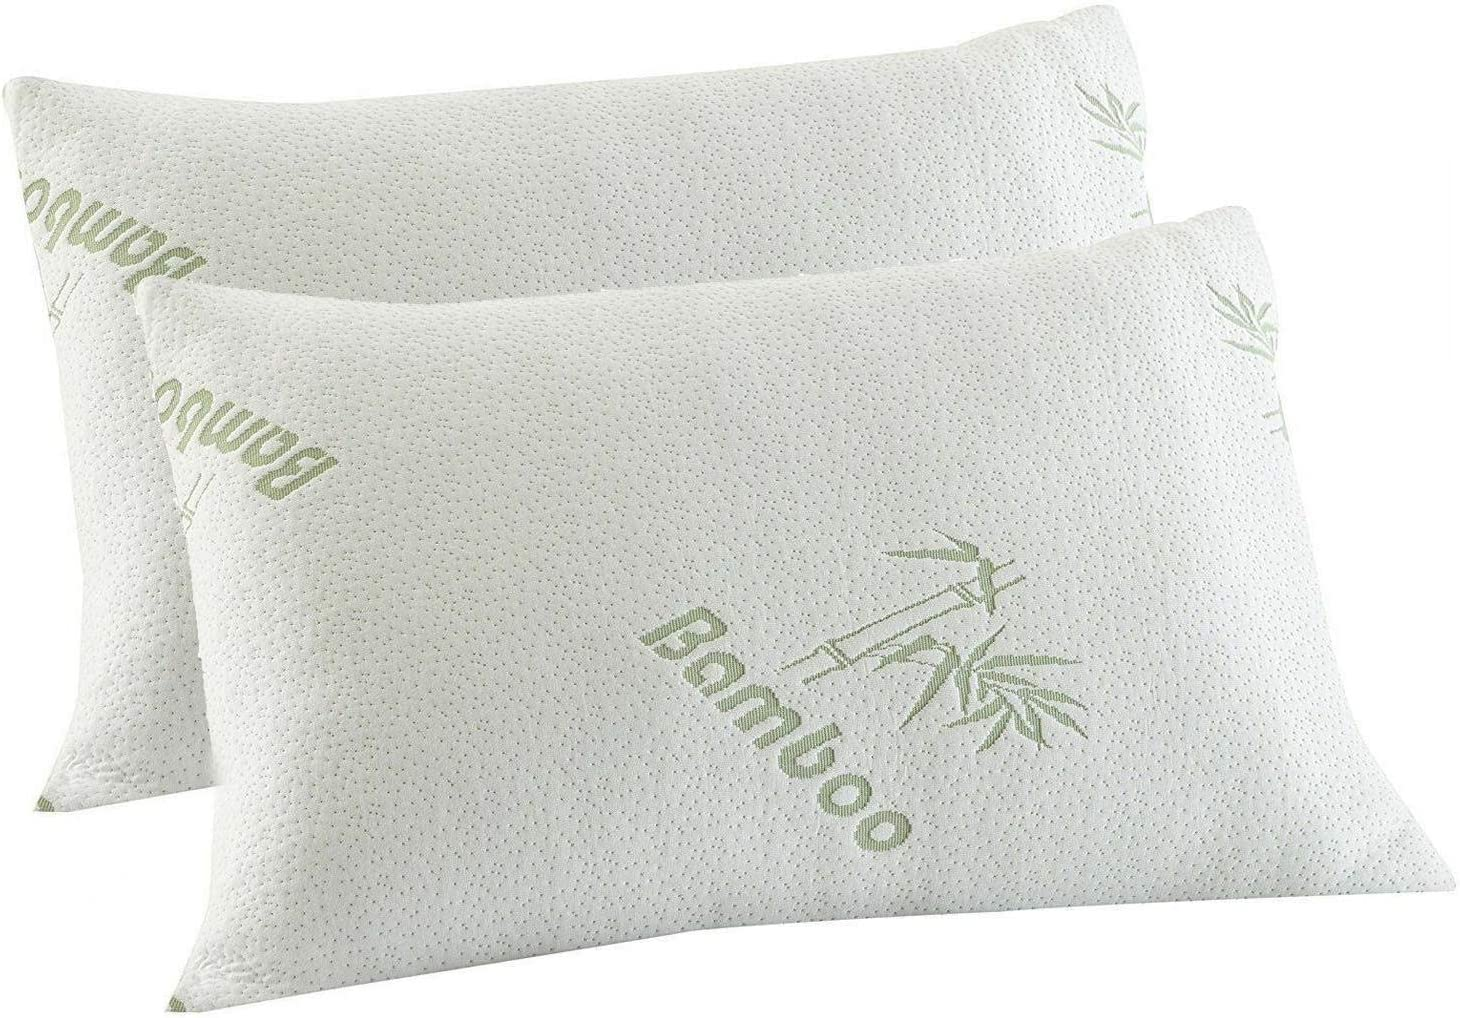 Removable Bamboo Pillowcase Mastery Mart Shredded Memory Foam Pillow Pillow,